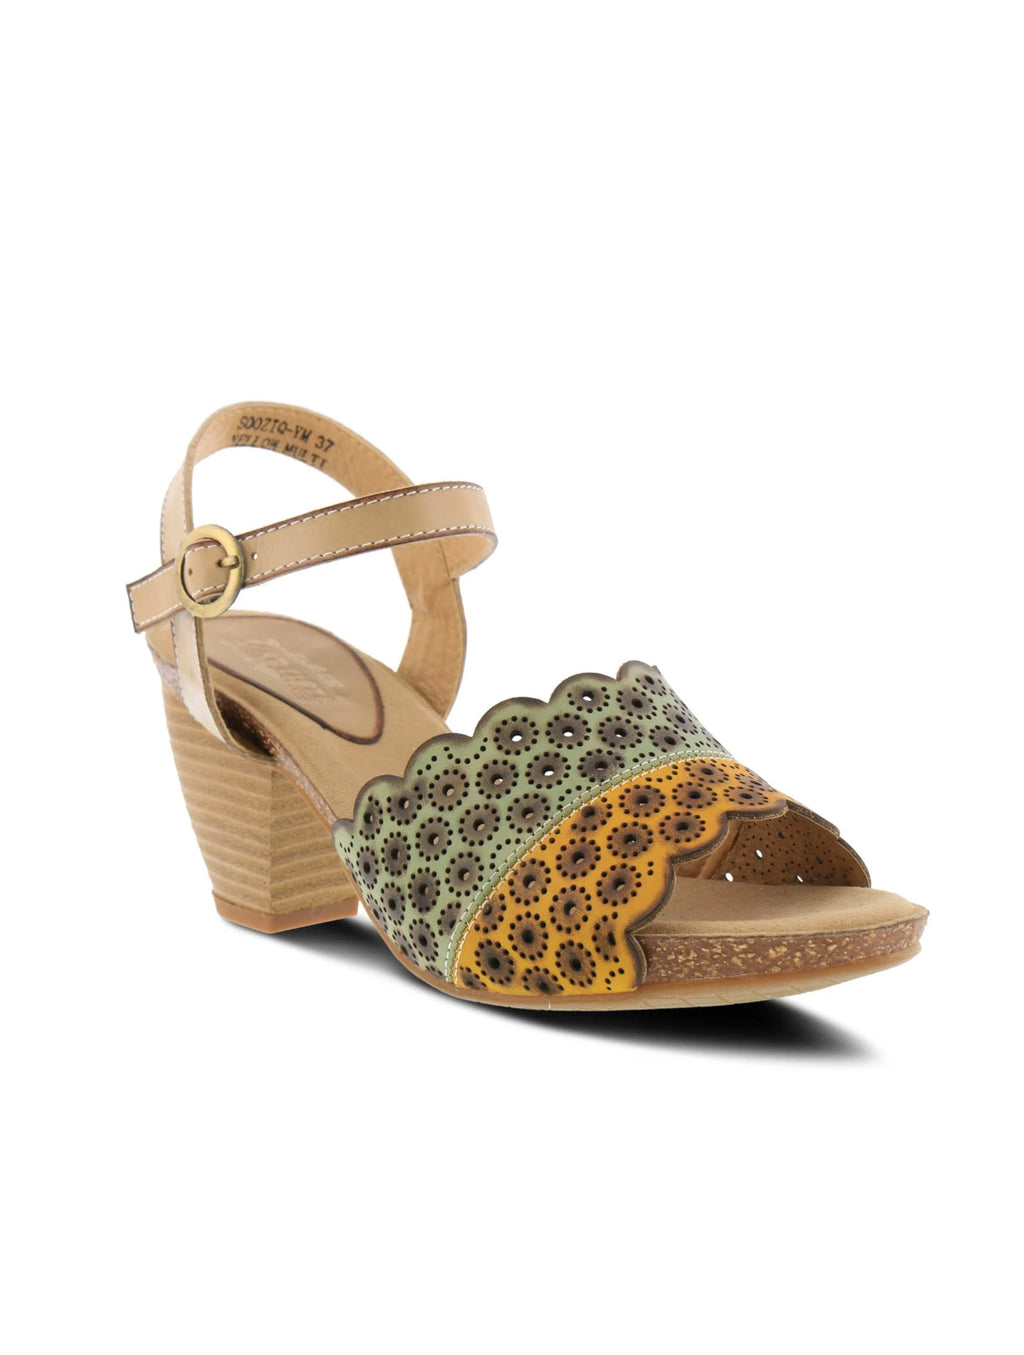 L'Artiste by Spring Step SooziQ Quarter Strap Heel in Yellow